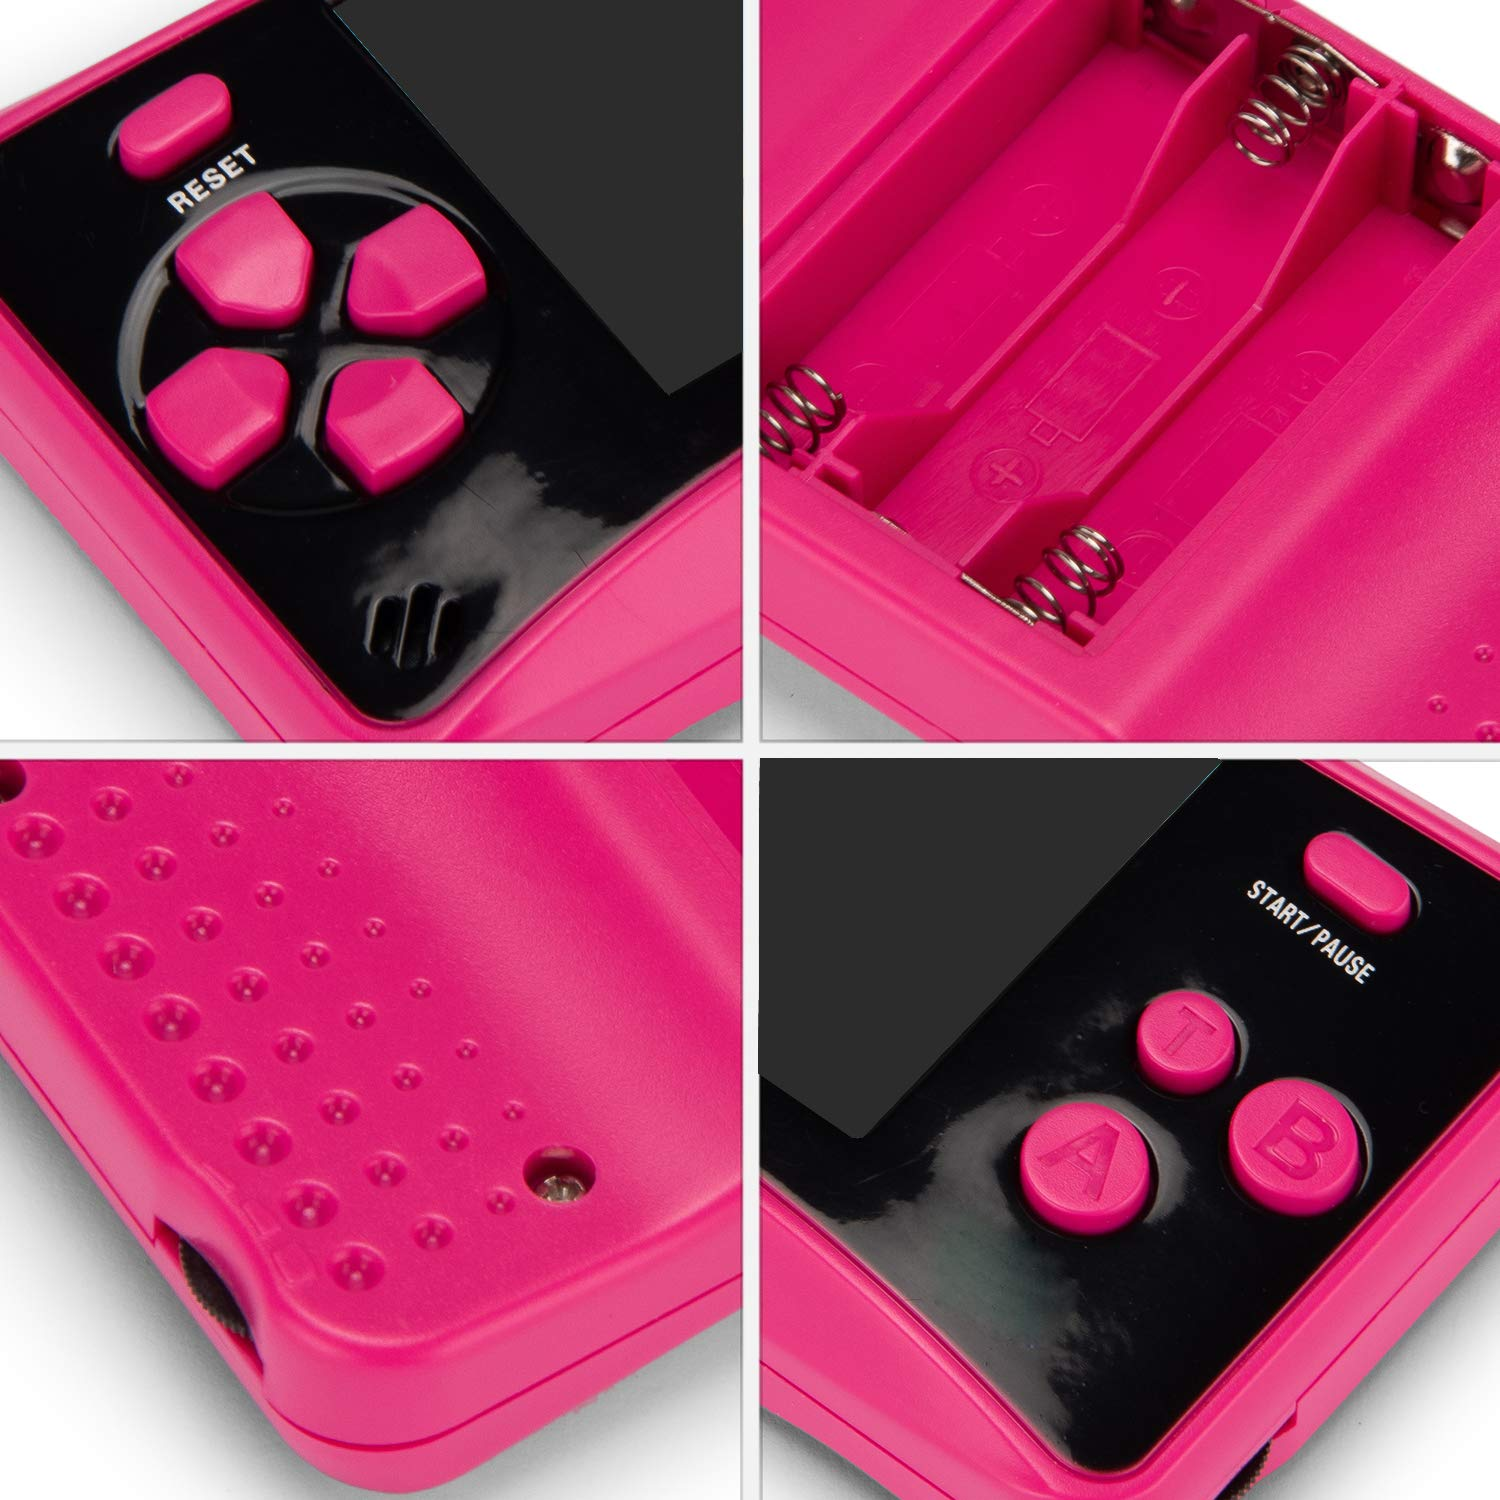 HigoKids Handheld Game Console for Kids Portable Retro Video Game Player Built-in 182 Classic Games 2.5 inches LCD Screen Family Recreation Arcade Gaming System Birthday Present for Children-Rose Red by HigoKids (Image #3)